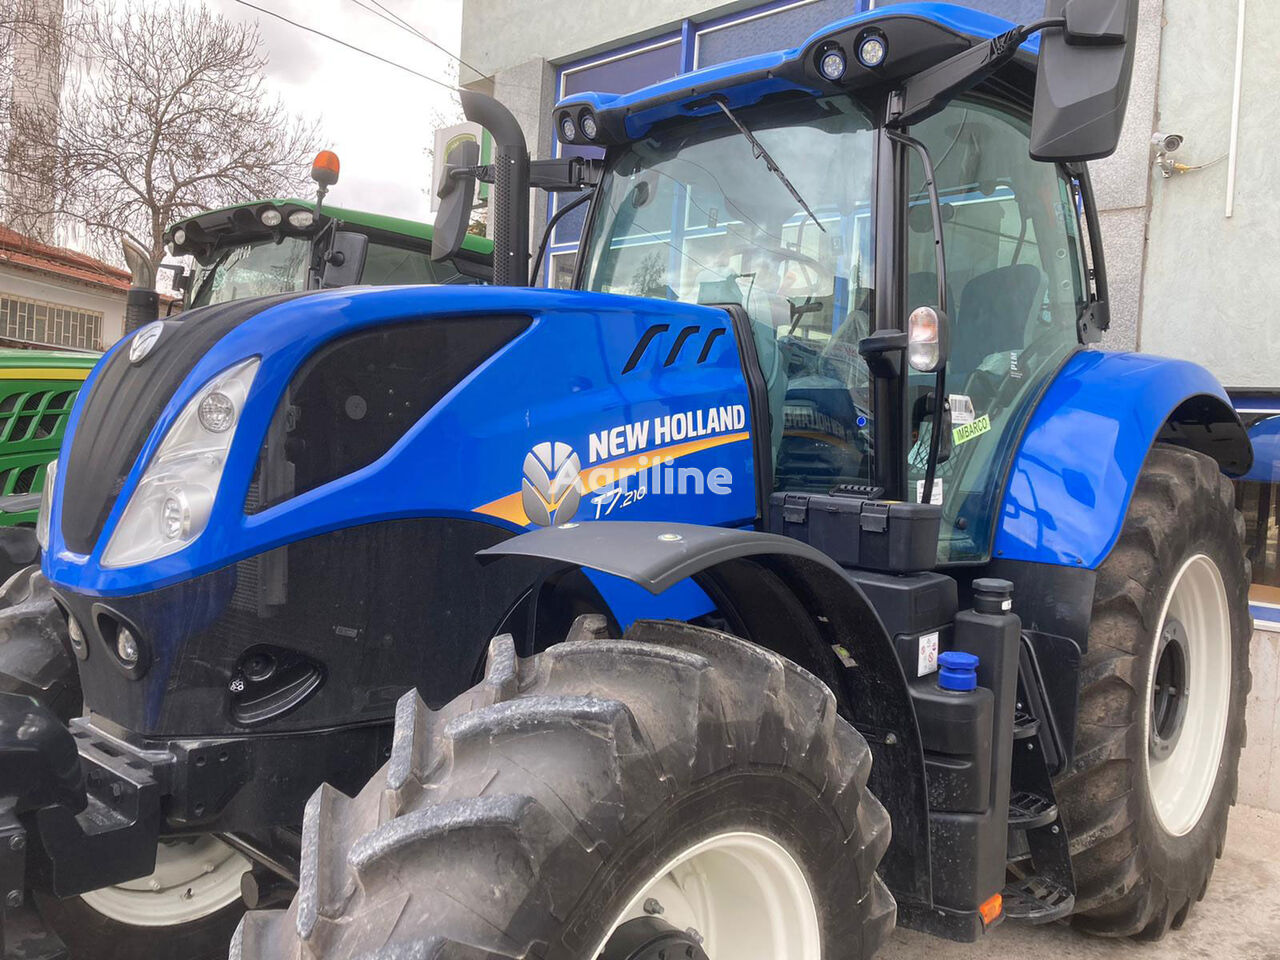 NEW HOLLAND T7.210 wheel tractor